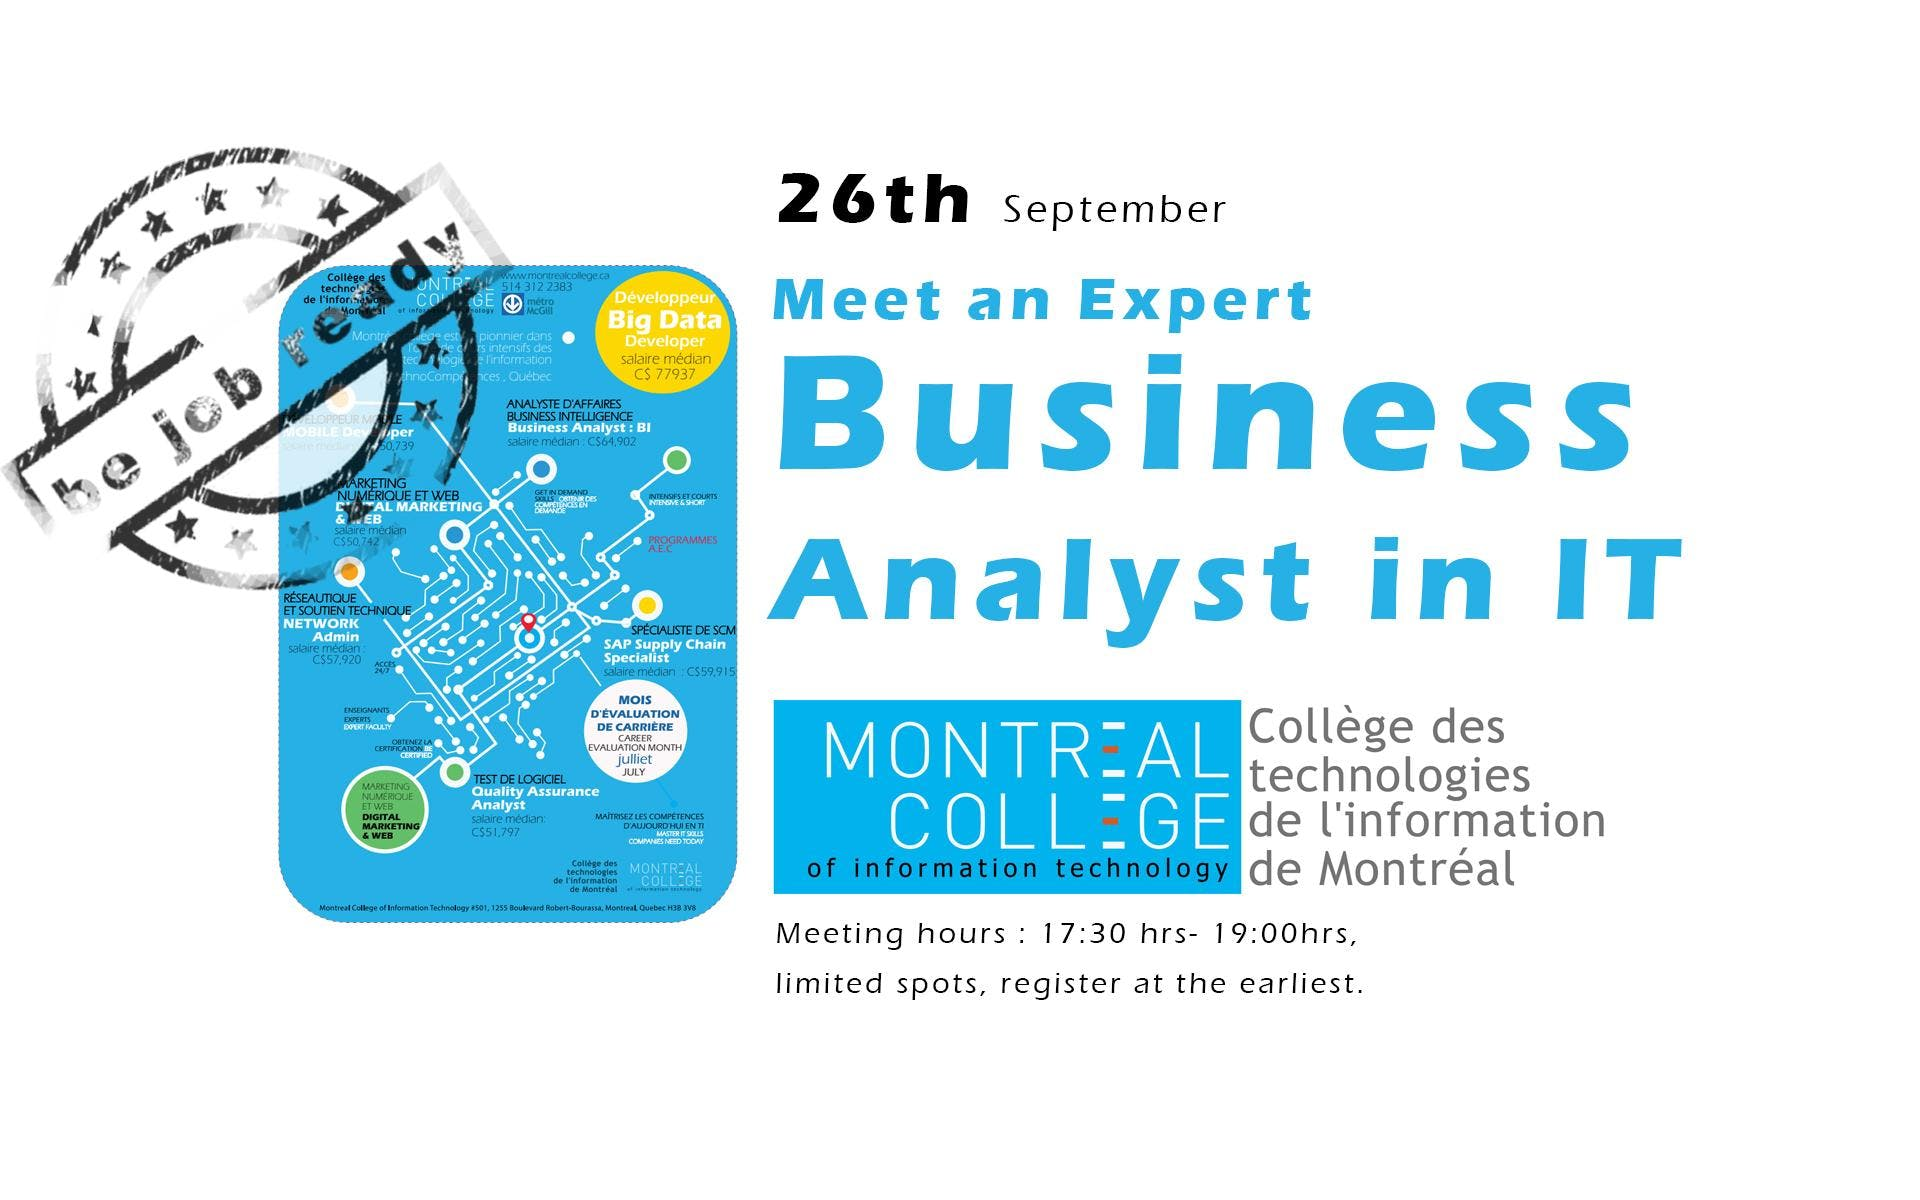 Montreal College's Business Analyst in IT - I